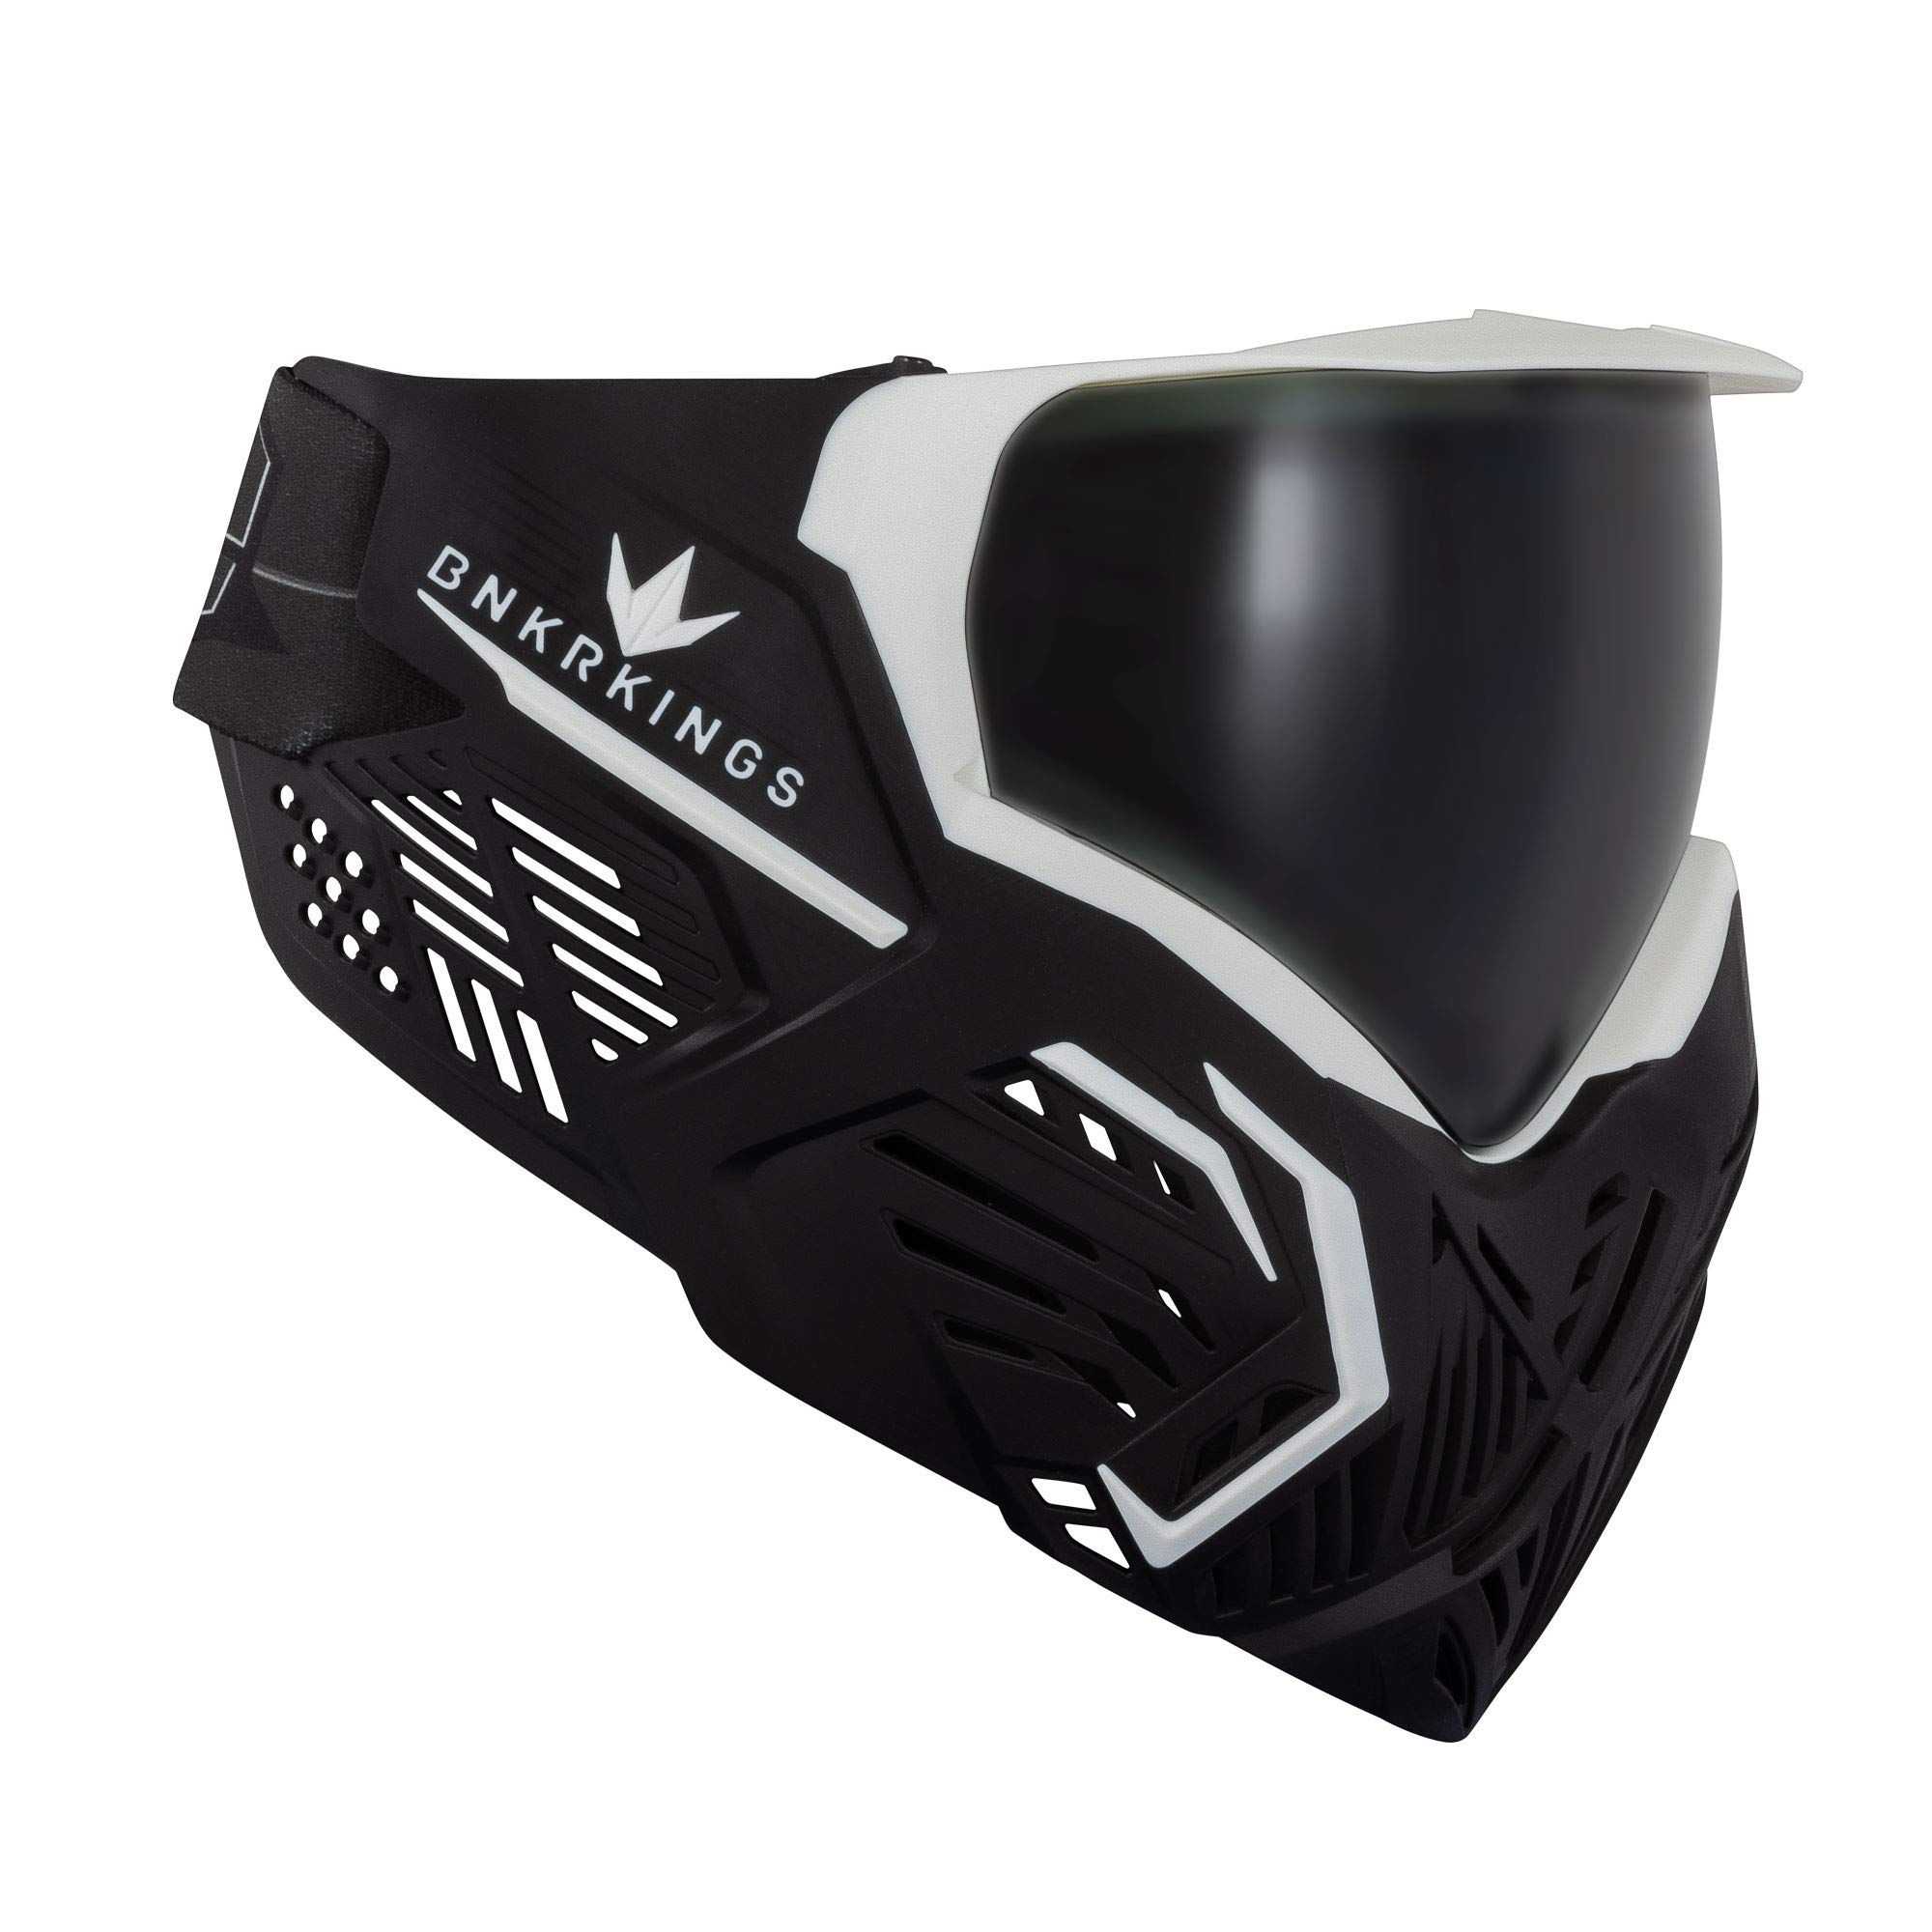 Bunker Kings CMD Paintball Goggle/Mask - Black Storm by Bnkr Kings